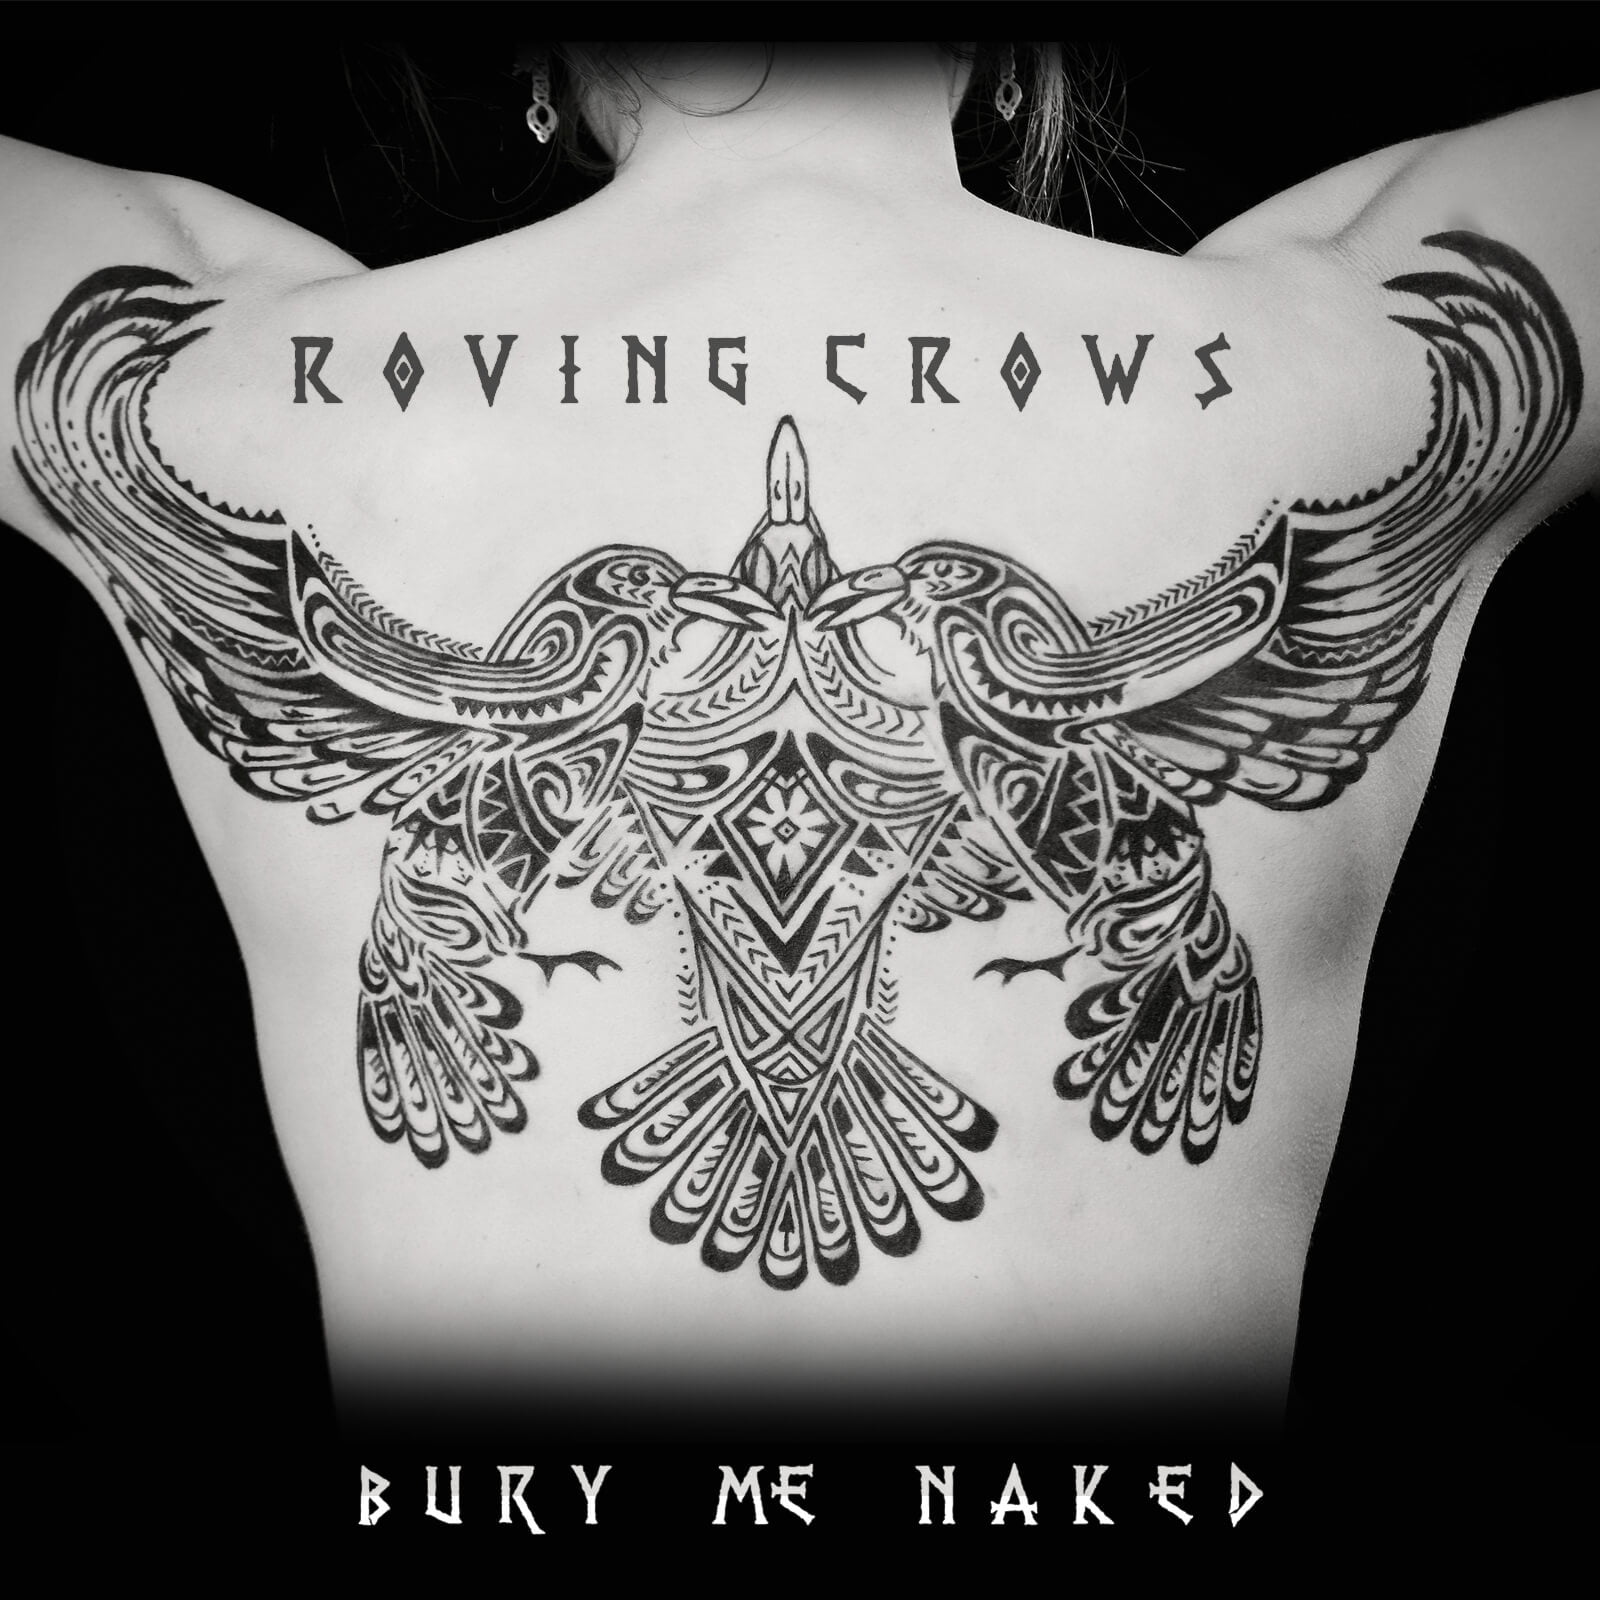 Roving Crows